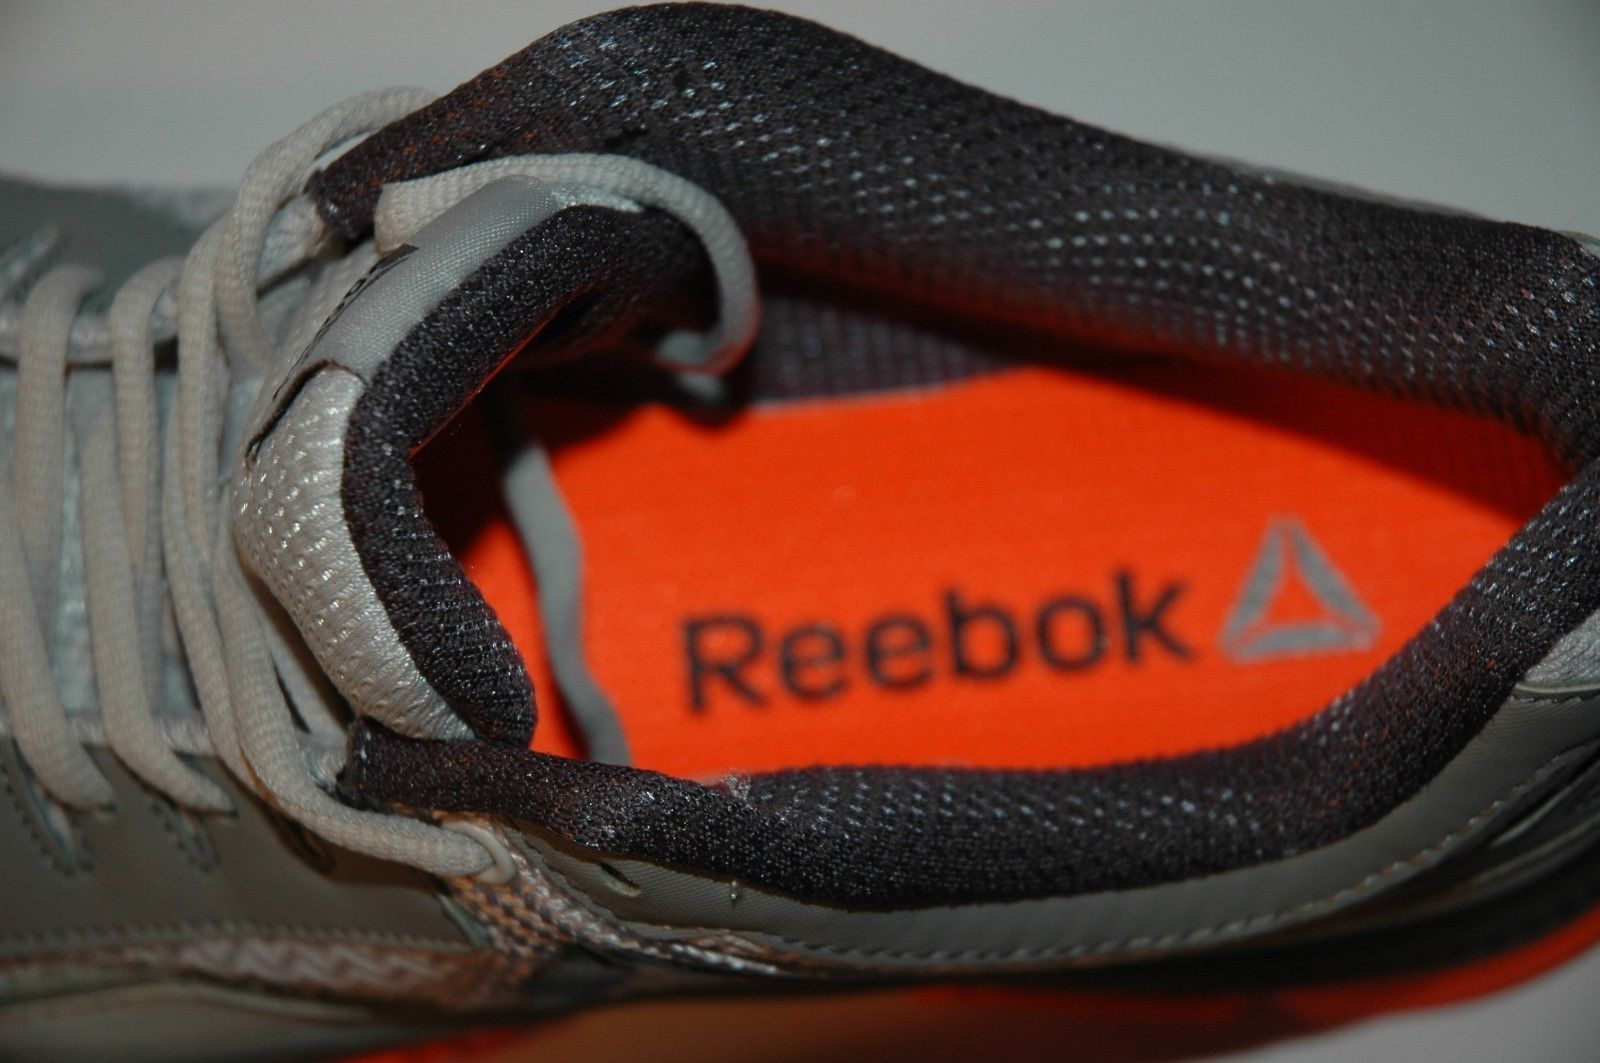 d503c212f682e Reebok Mens BD2244 Ridgerider Trail 2.0 and 50 similar items